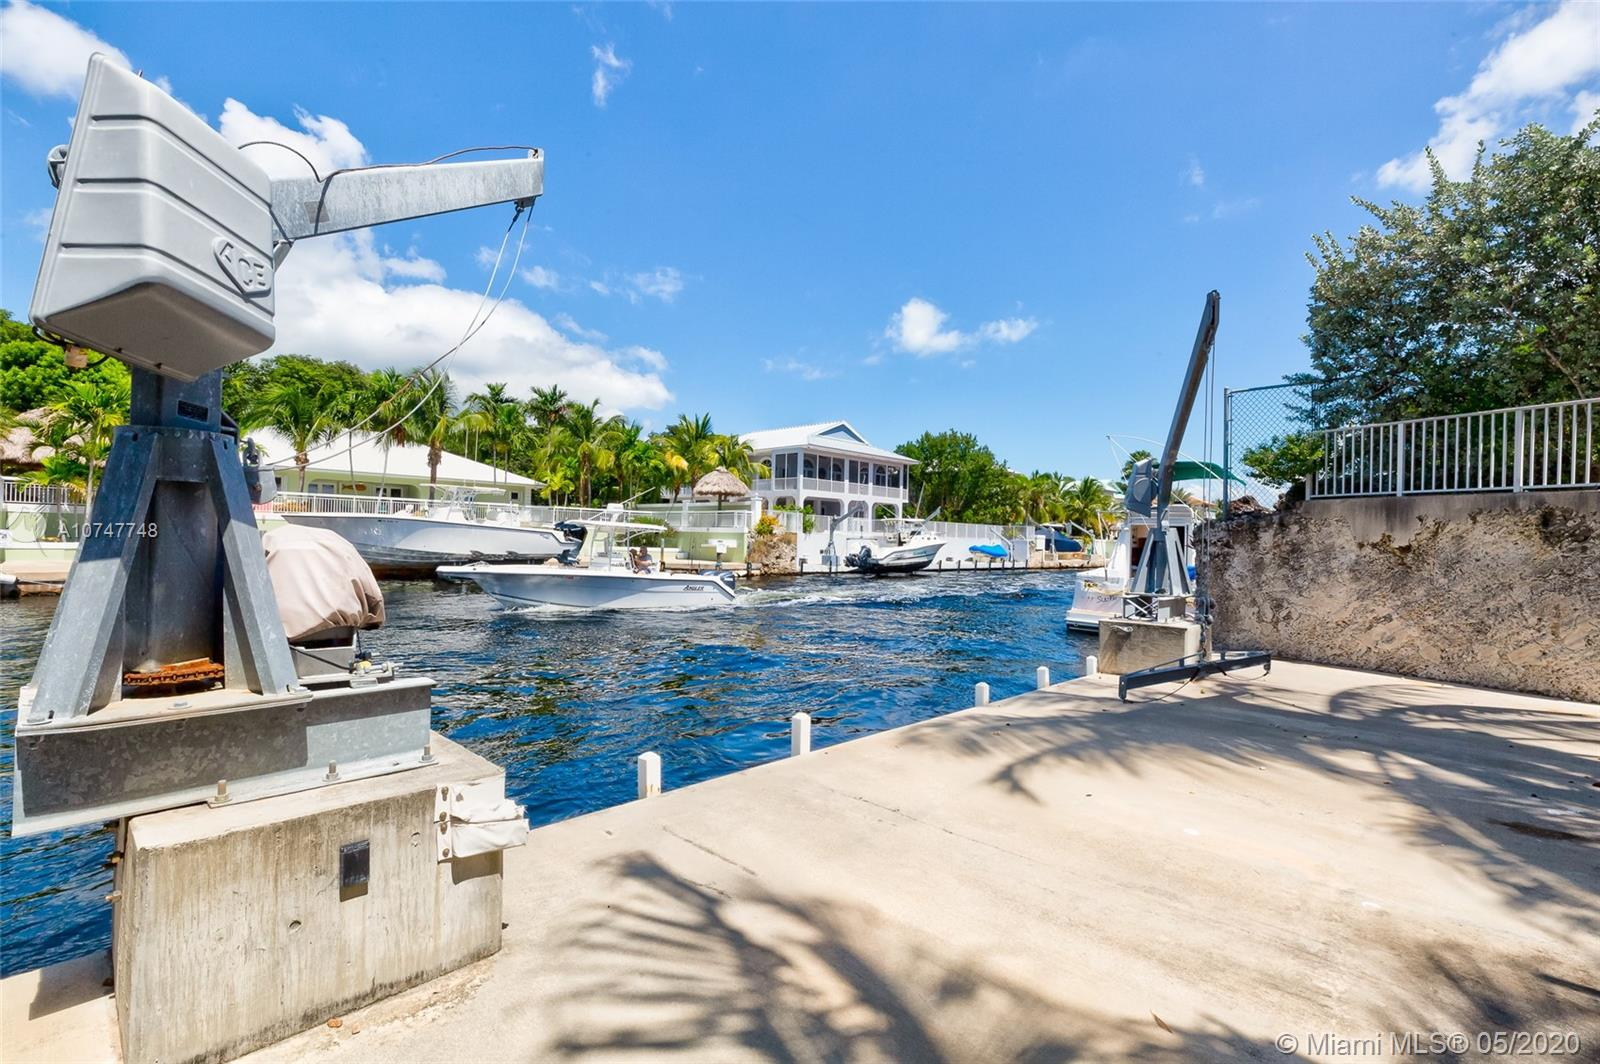 22 Bass Ave, Other City - Keys/Islands/Caribb, FL 33037 - Other City - Keys/Islands/Caribb, FL real estate listing